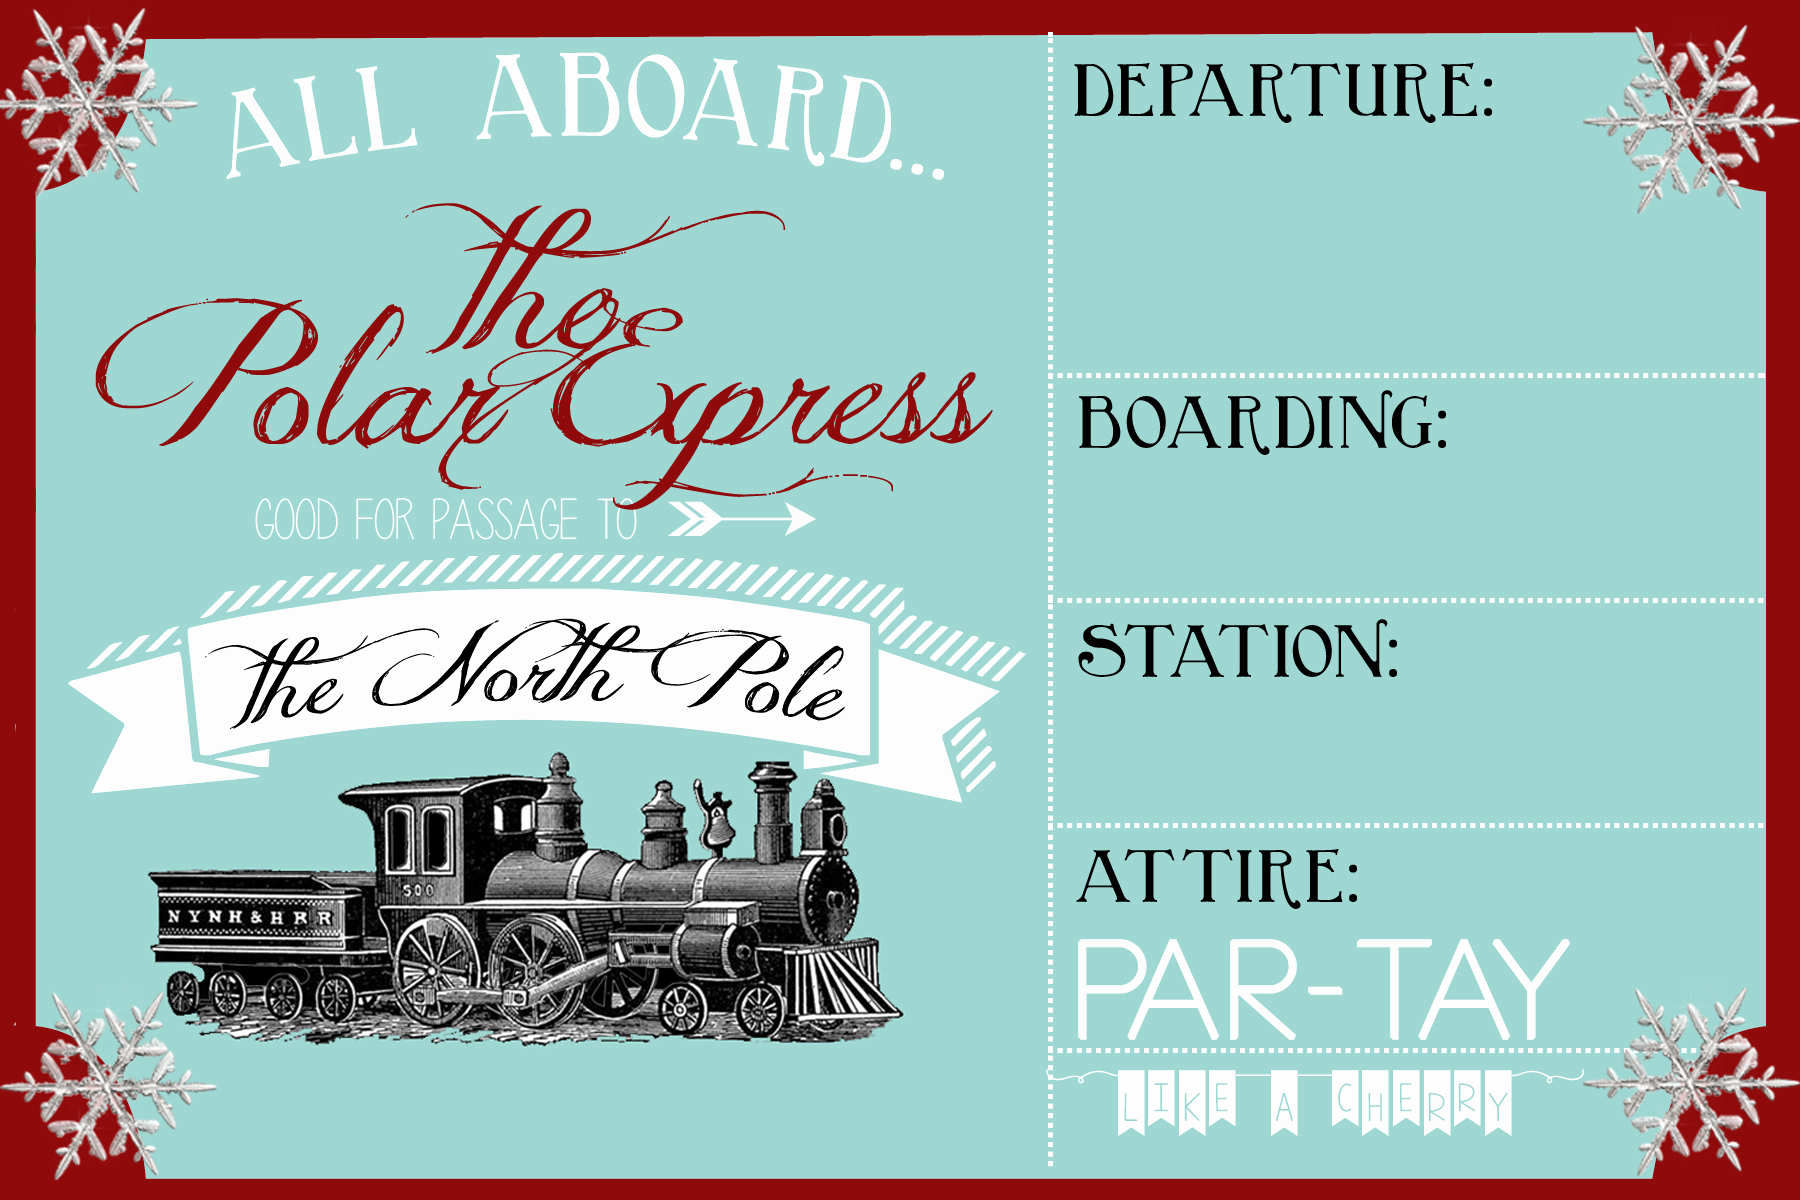 Polar Express Invitation Template Lovely Polar Express Party Invitation Party Like A Cherry